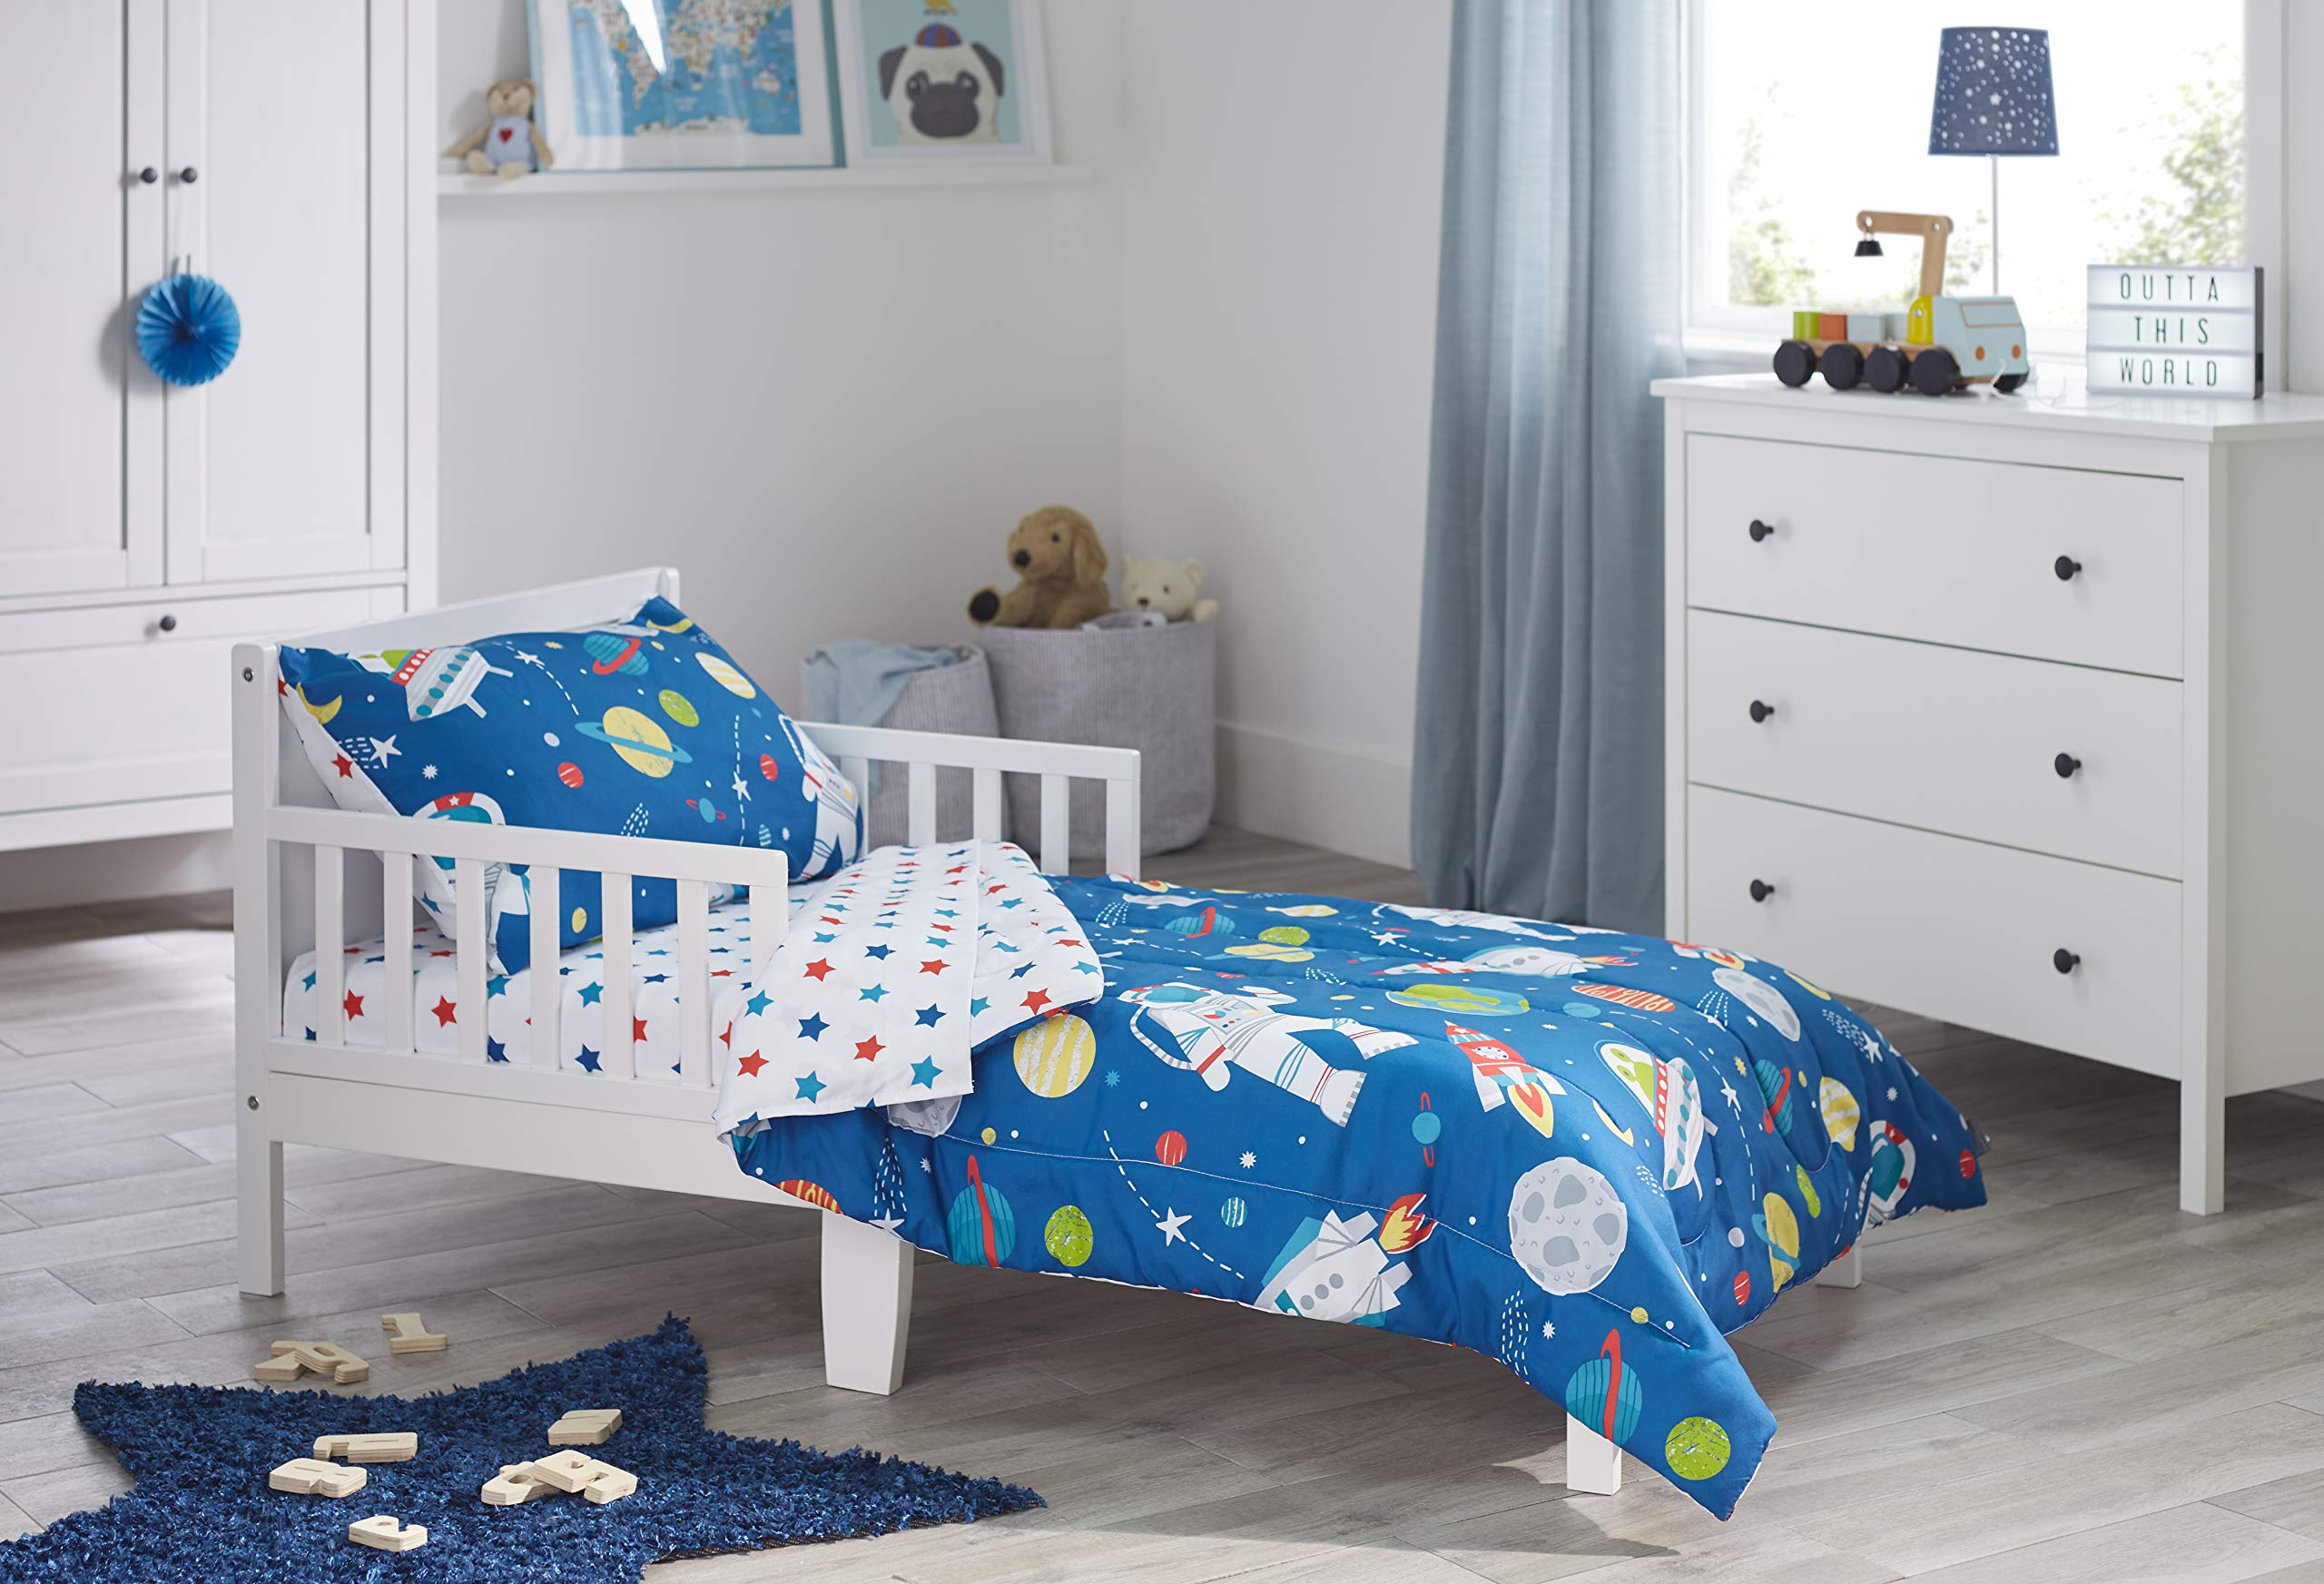 Bloomsbury Mill - 4 Piece Toddler Comforter Set - Outer Space, Rocket & Planet - Blue - Kids Bedding Set by Bloomsbury Mill (Image #1)